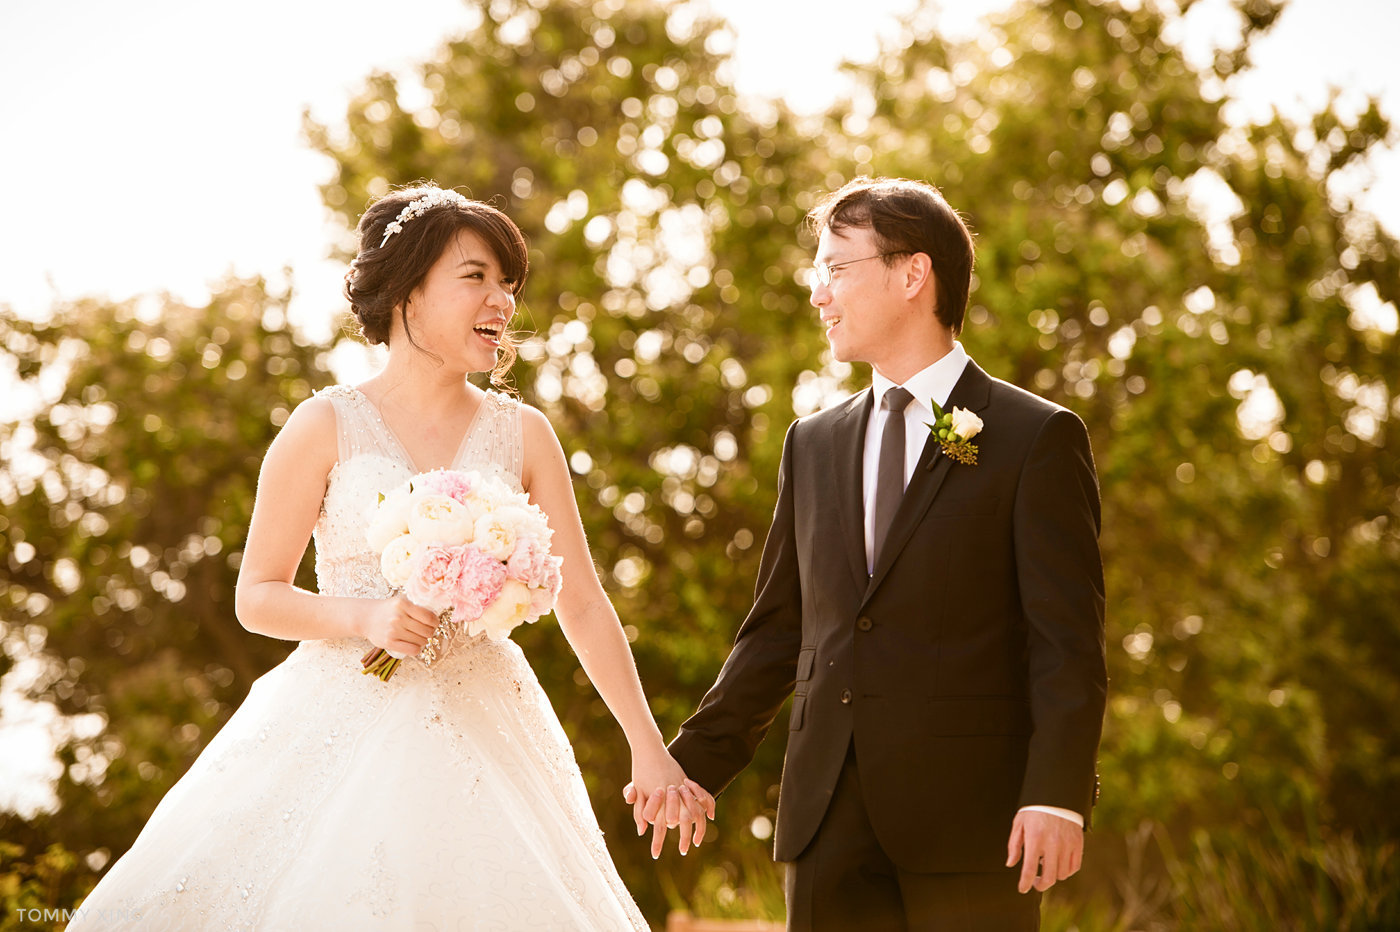 Qinglu Meng & Daozheng Chen Wedding Slideshow-66-E.JPG